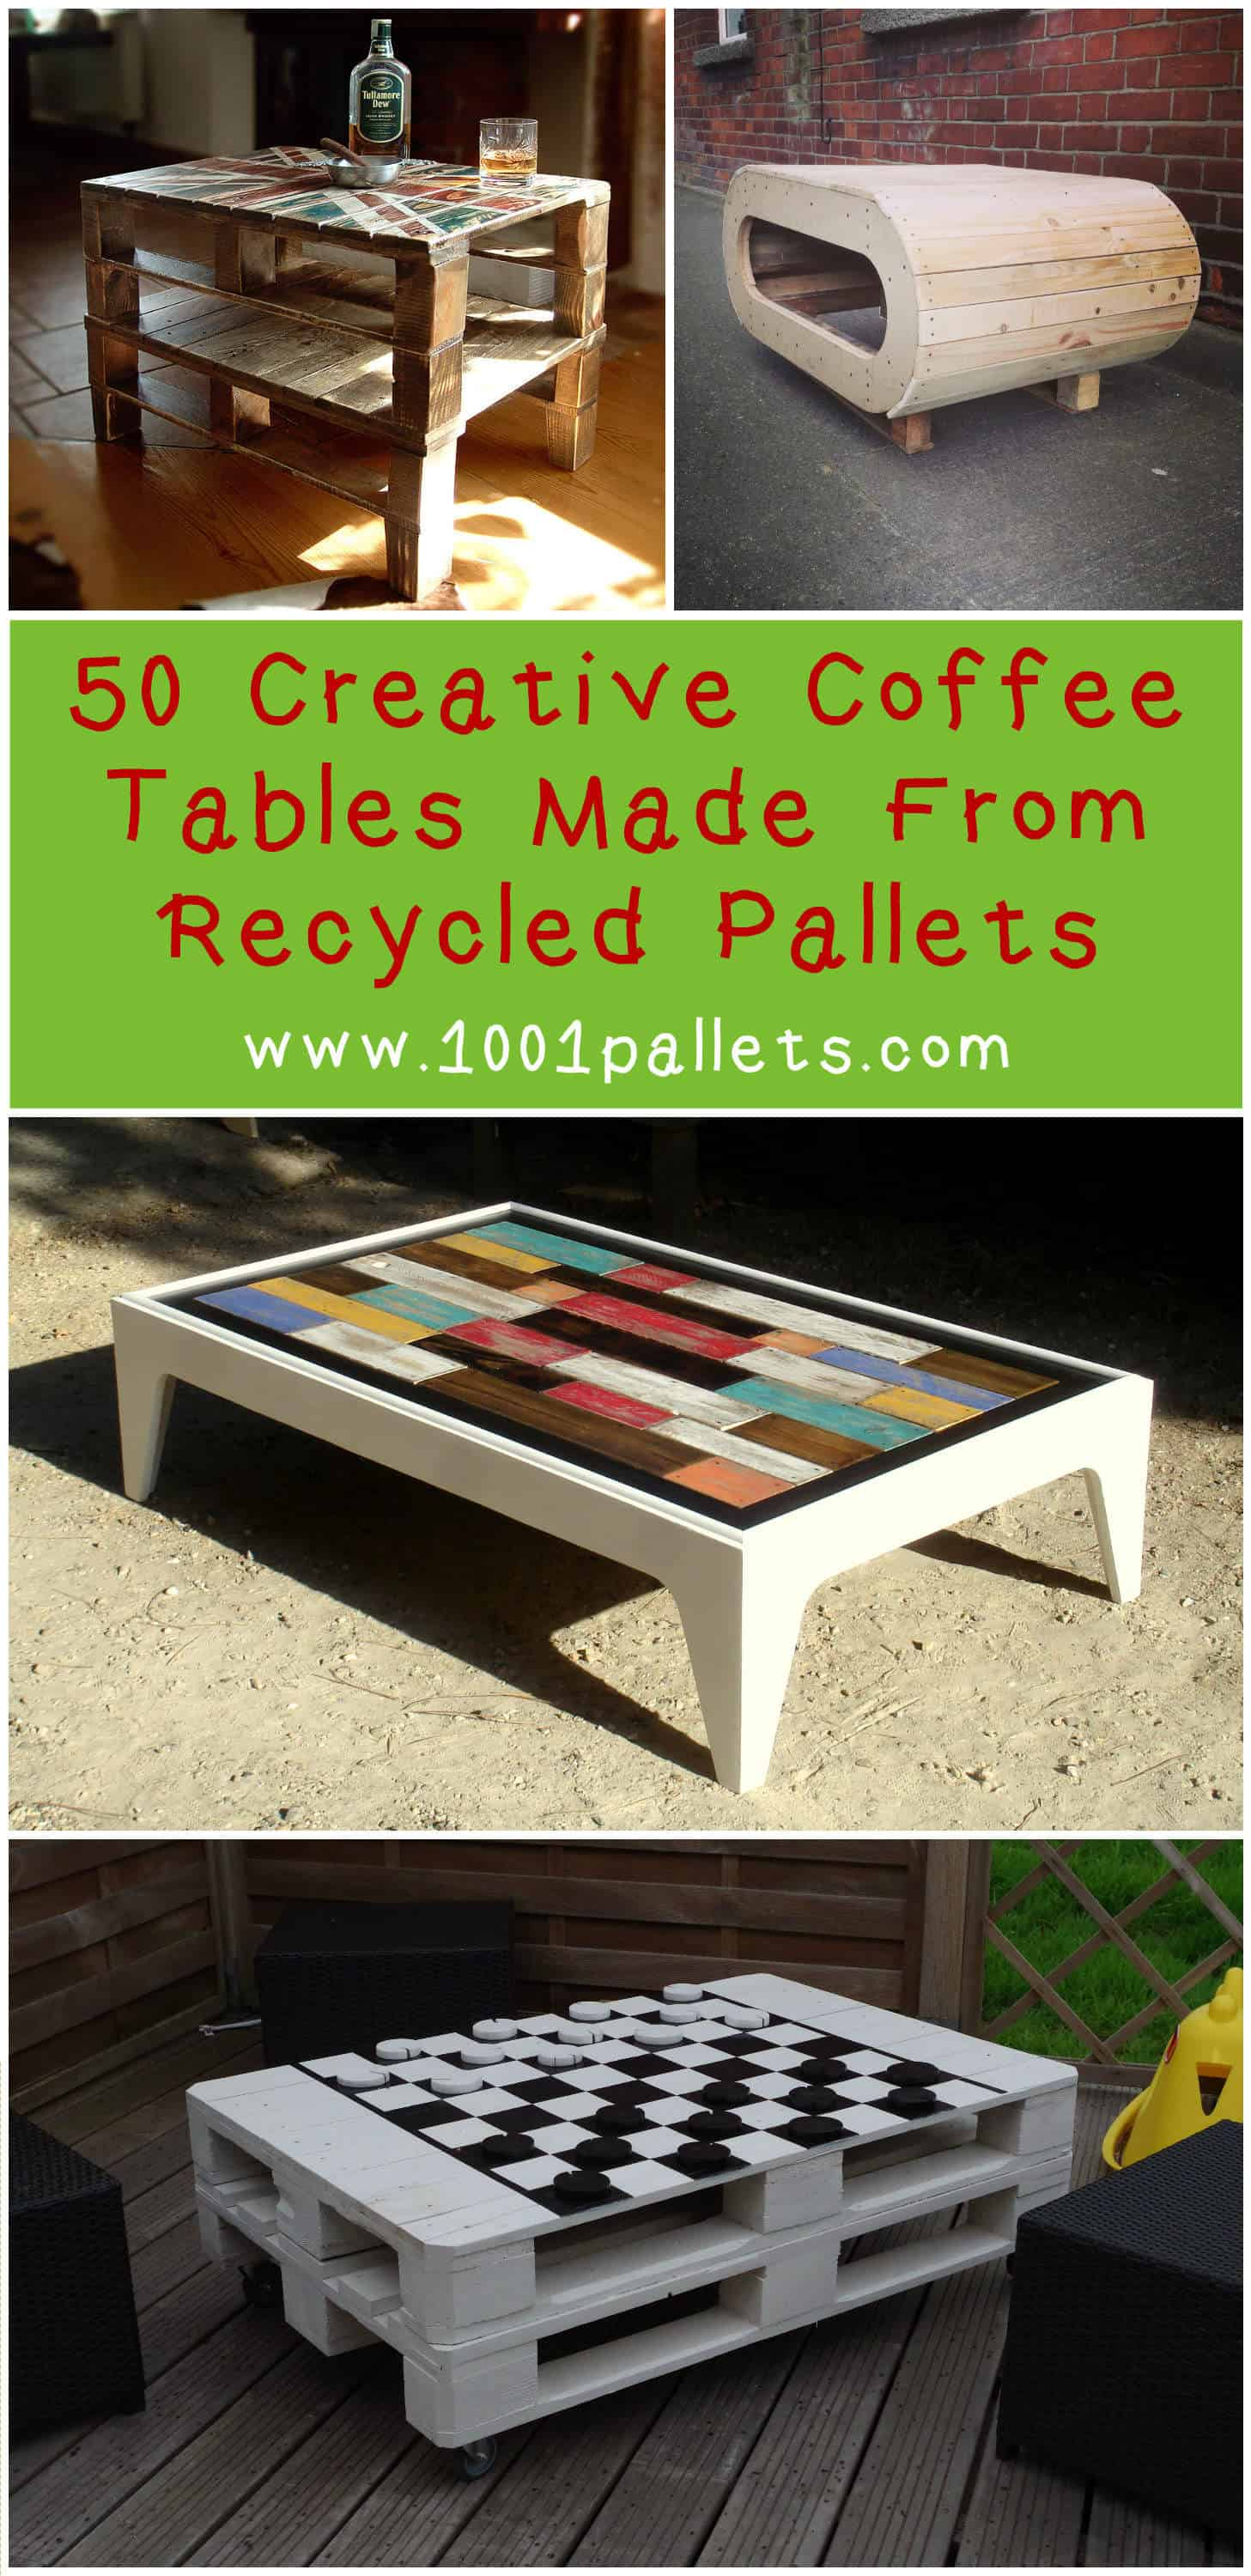 50 Creative Coffee Tables Made From Recycled Pallets For Your ...